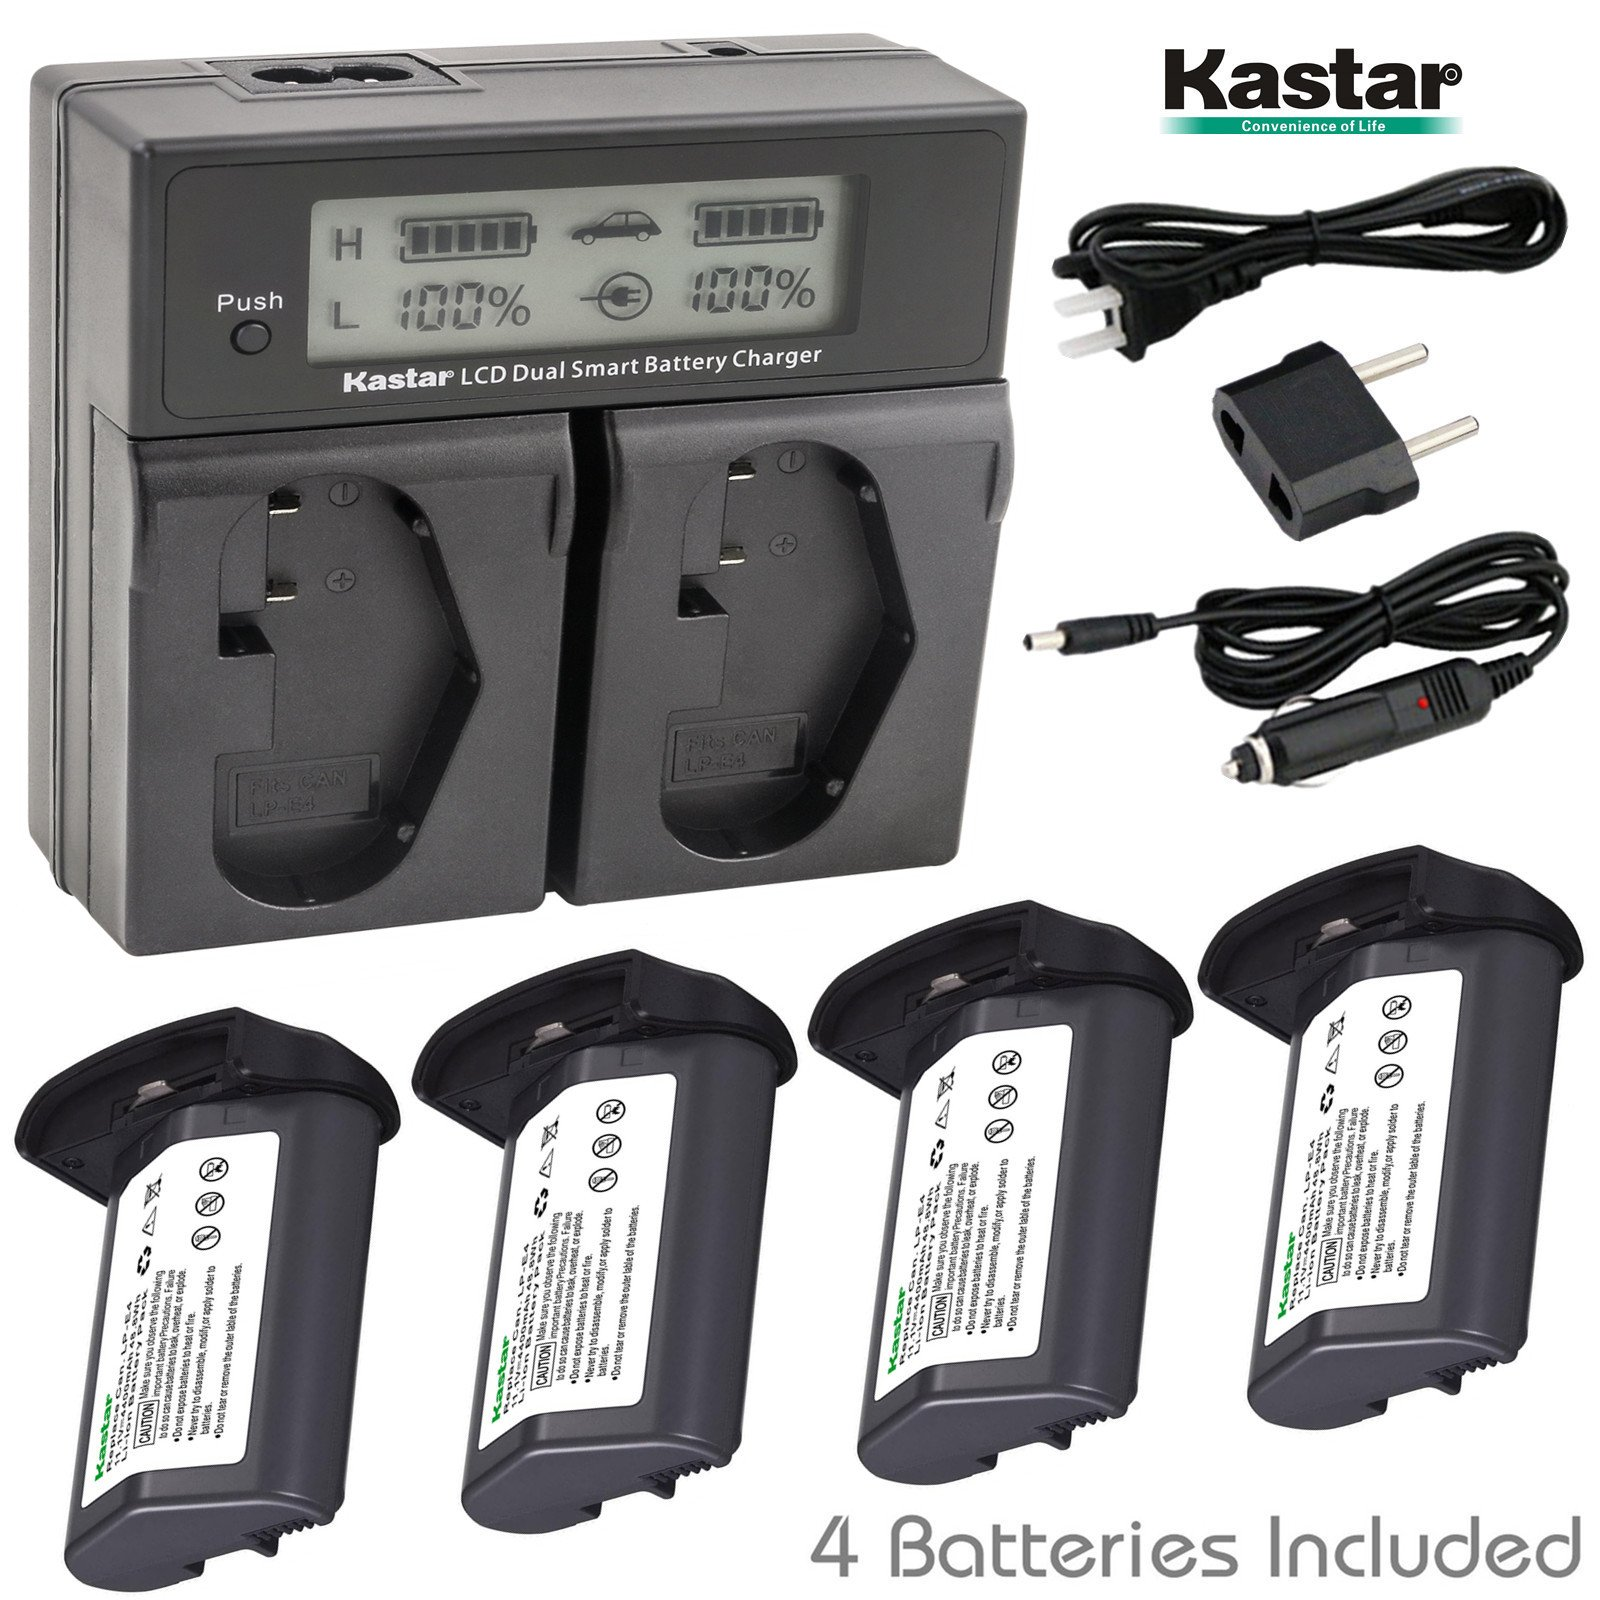 Kastar LCD Dual Smart Fast Charger & Battery (4 PACK) for Canon LP-E4, LPE4 (11.1V 4400mAh 48.4Wh) and Canon EOS-1D C, EOS-1D Mark III, EOS-1Ds Mark III, EOS-1D Mark IV Cameras